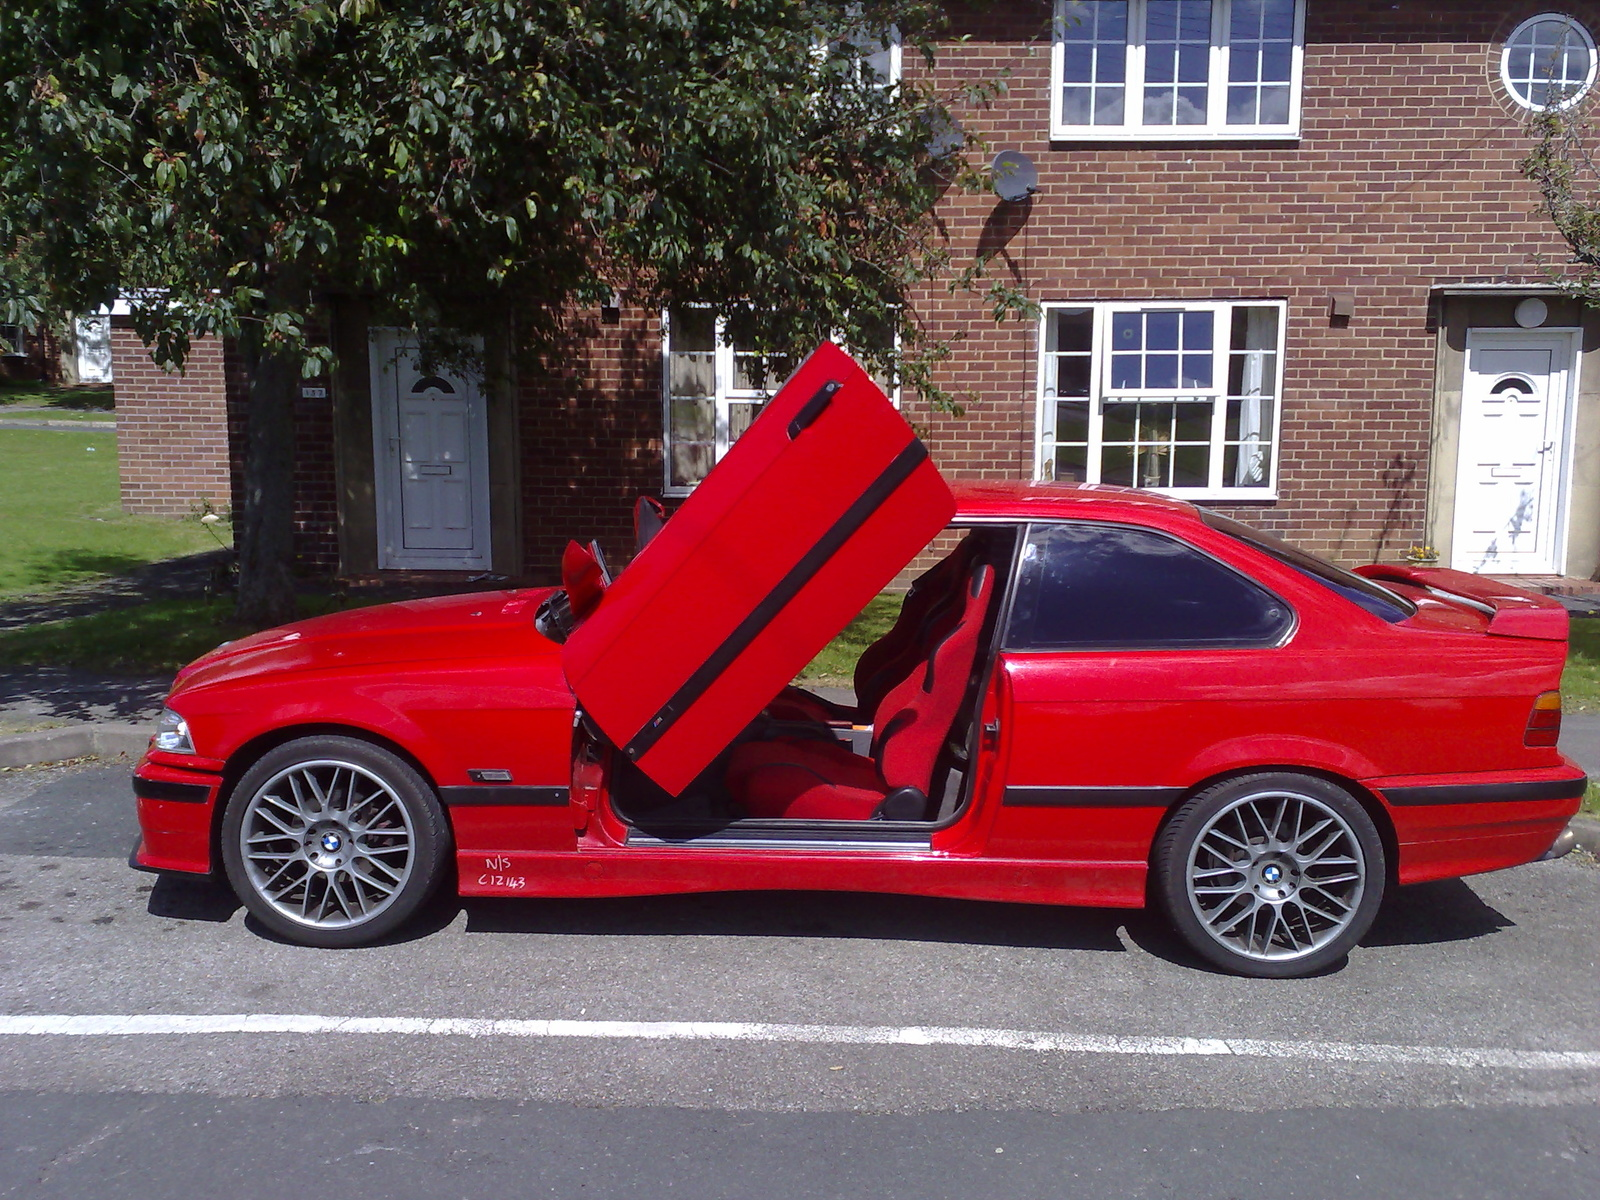 BMW Series Information And Photos ZombieDrive - 1992 bmw 325is